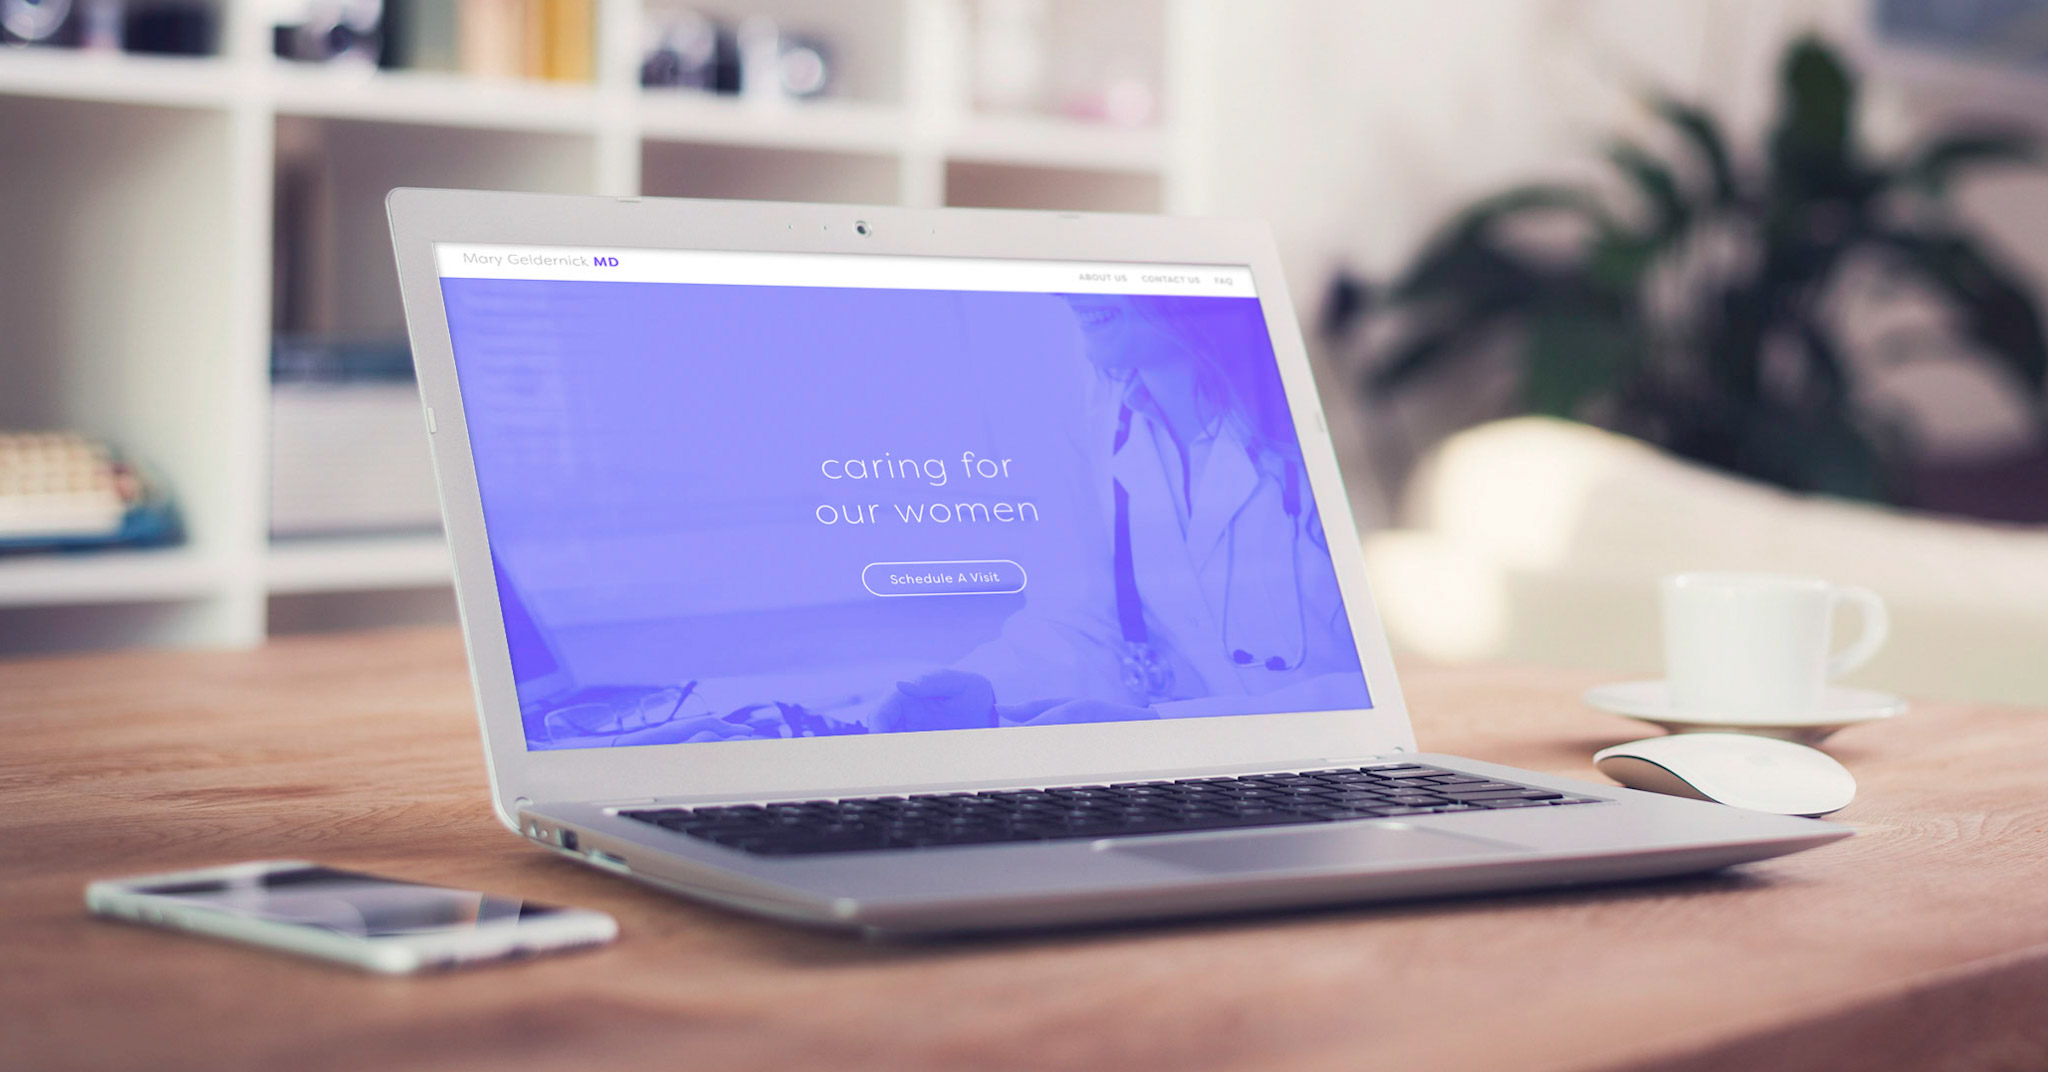 """This image shows the new homepage for the website we developed for Dr Geldernick. The hero includes the text """"Caring for Our Women"""" with a button """"schedule a visit""""."""